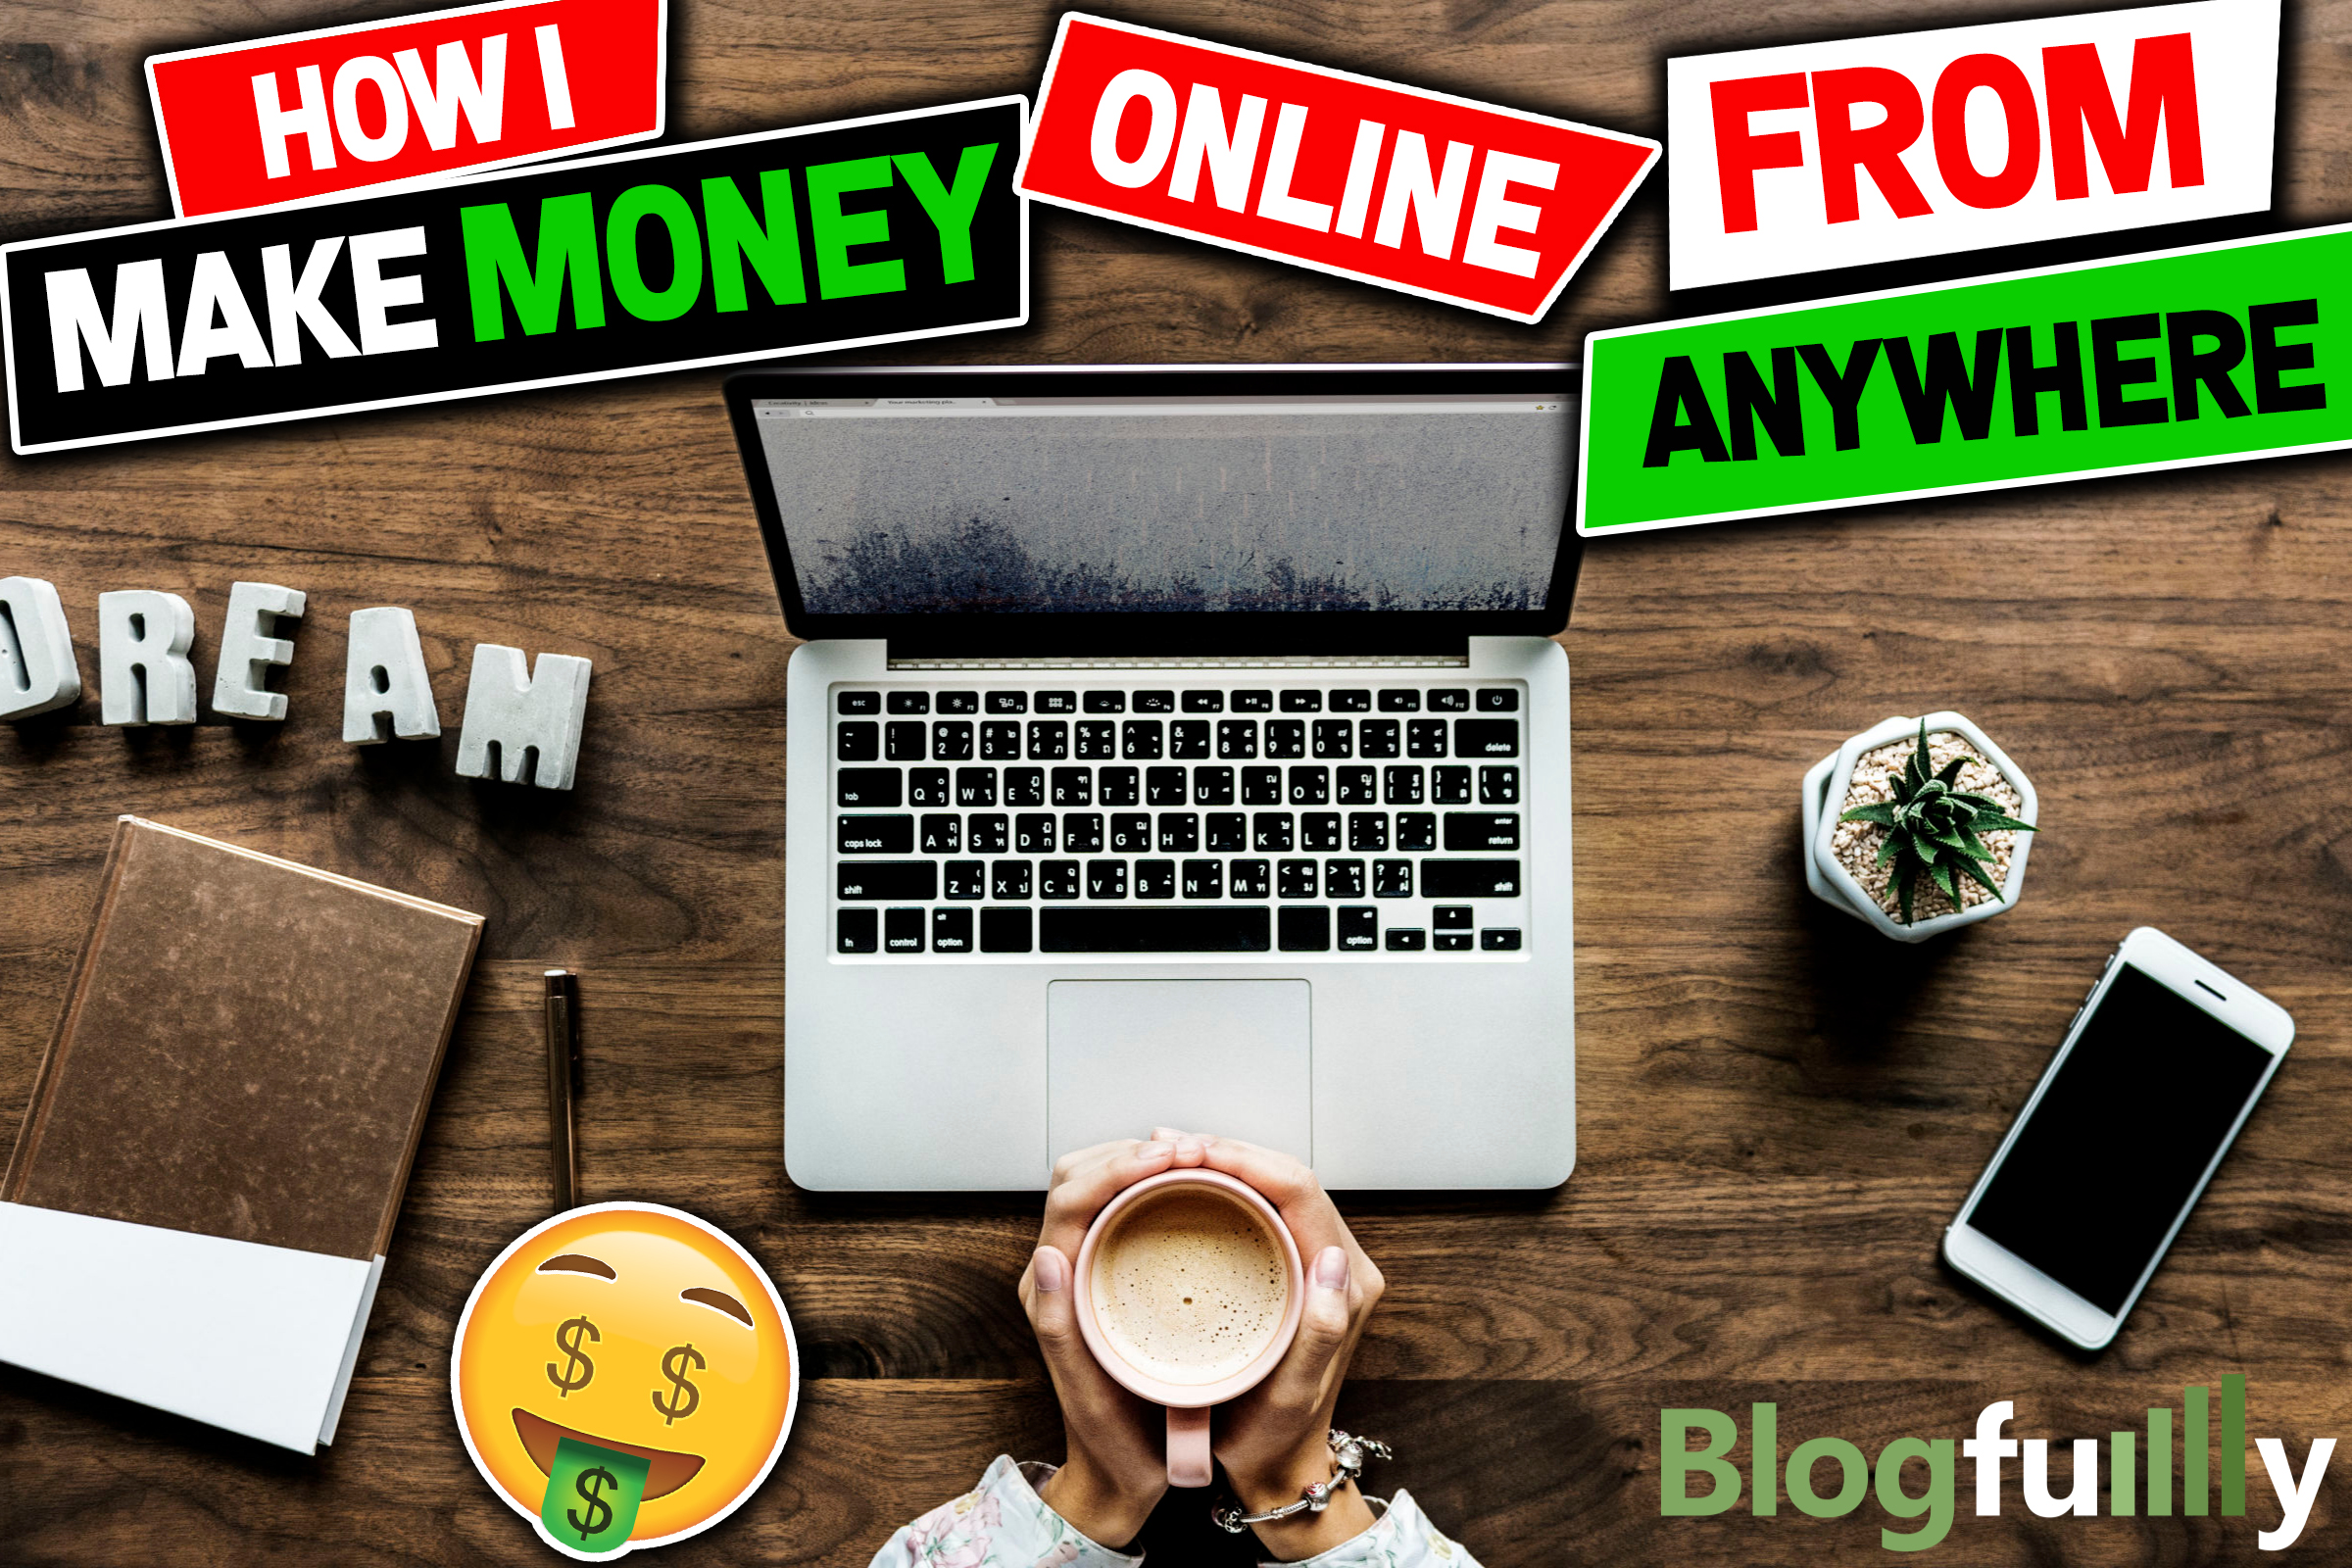 How I Make Money Online From Anywhere